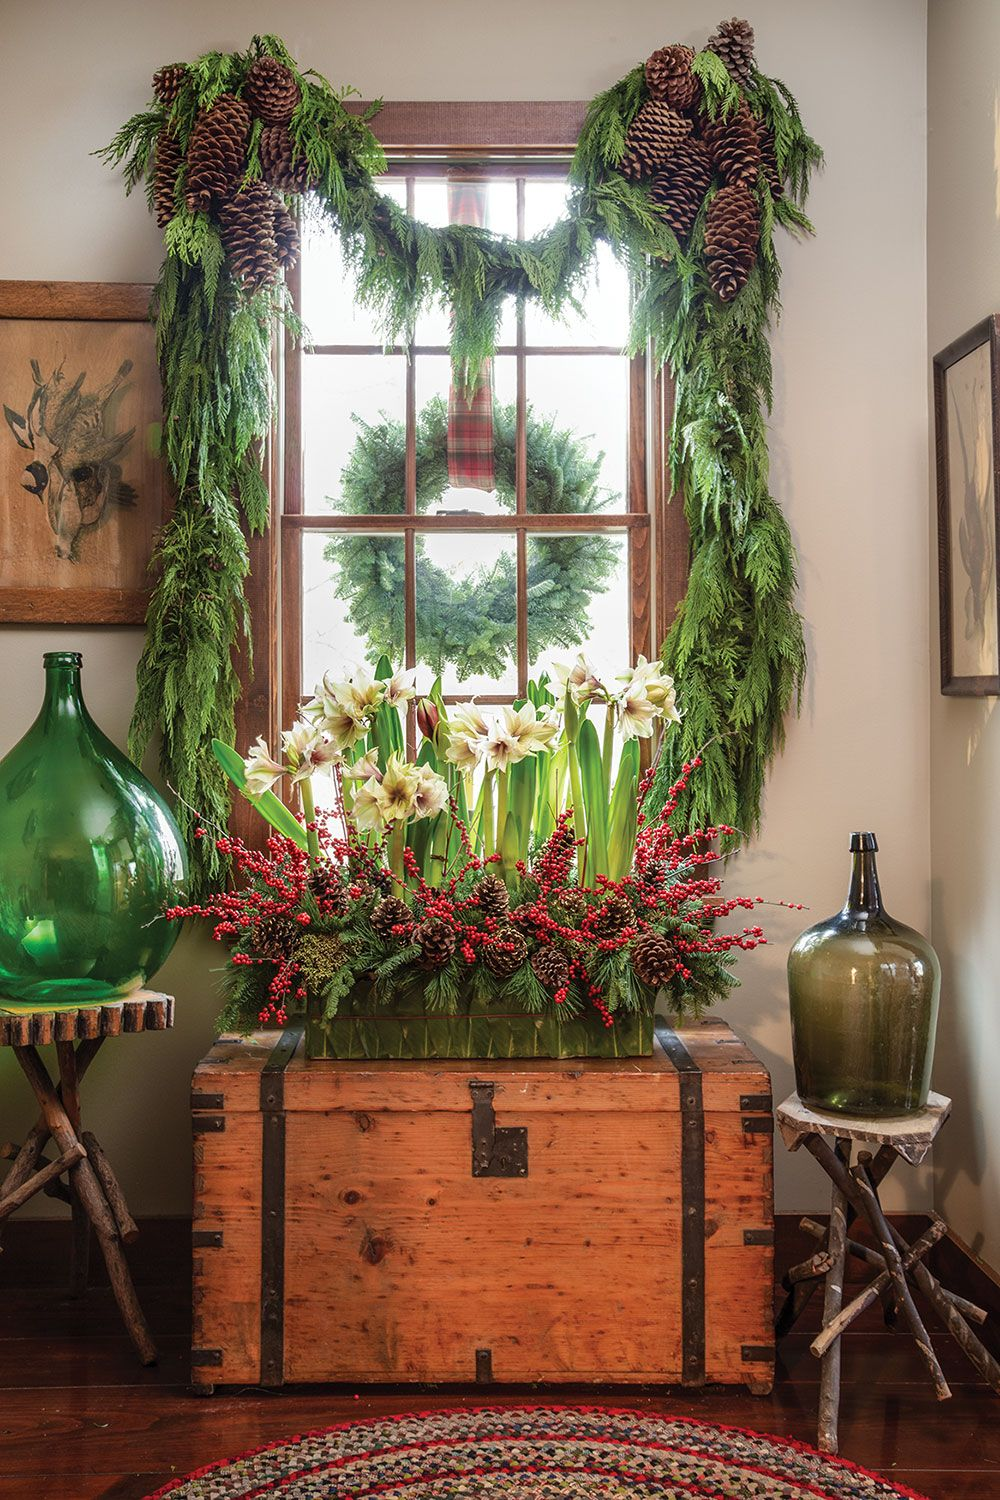 Amaryllis and Holly Berry Arrangement   #christmas #christmasdecor #christmasdecorations #holidaydecor #greenery #decoratingwithgreenery #traditionalchristmas